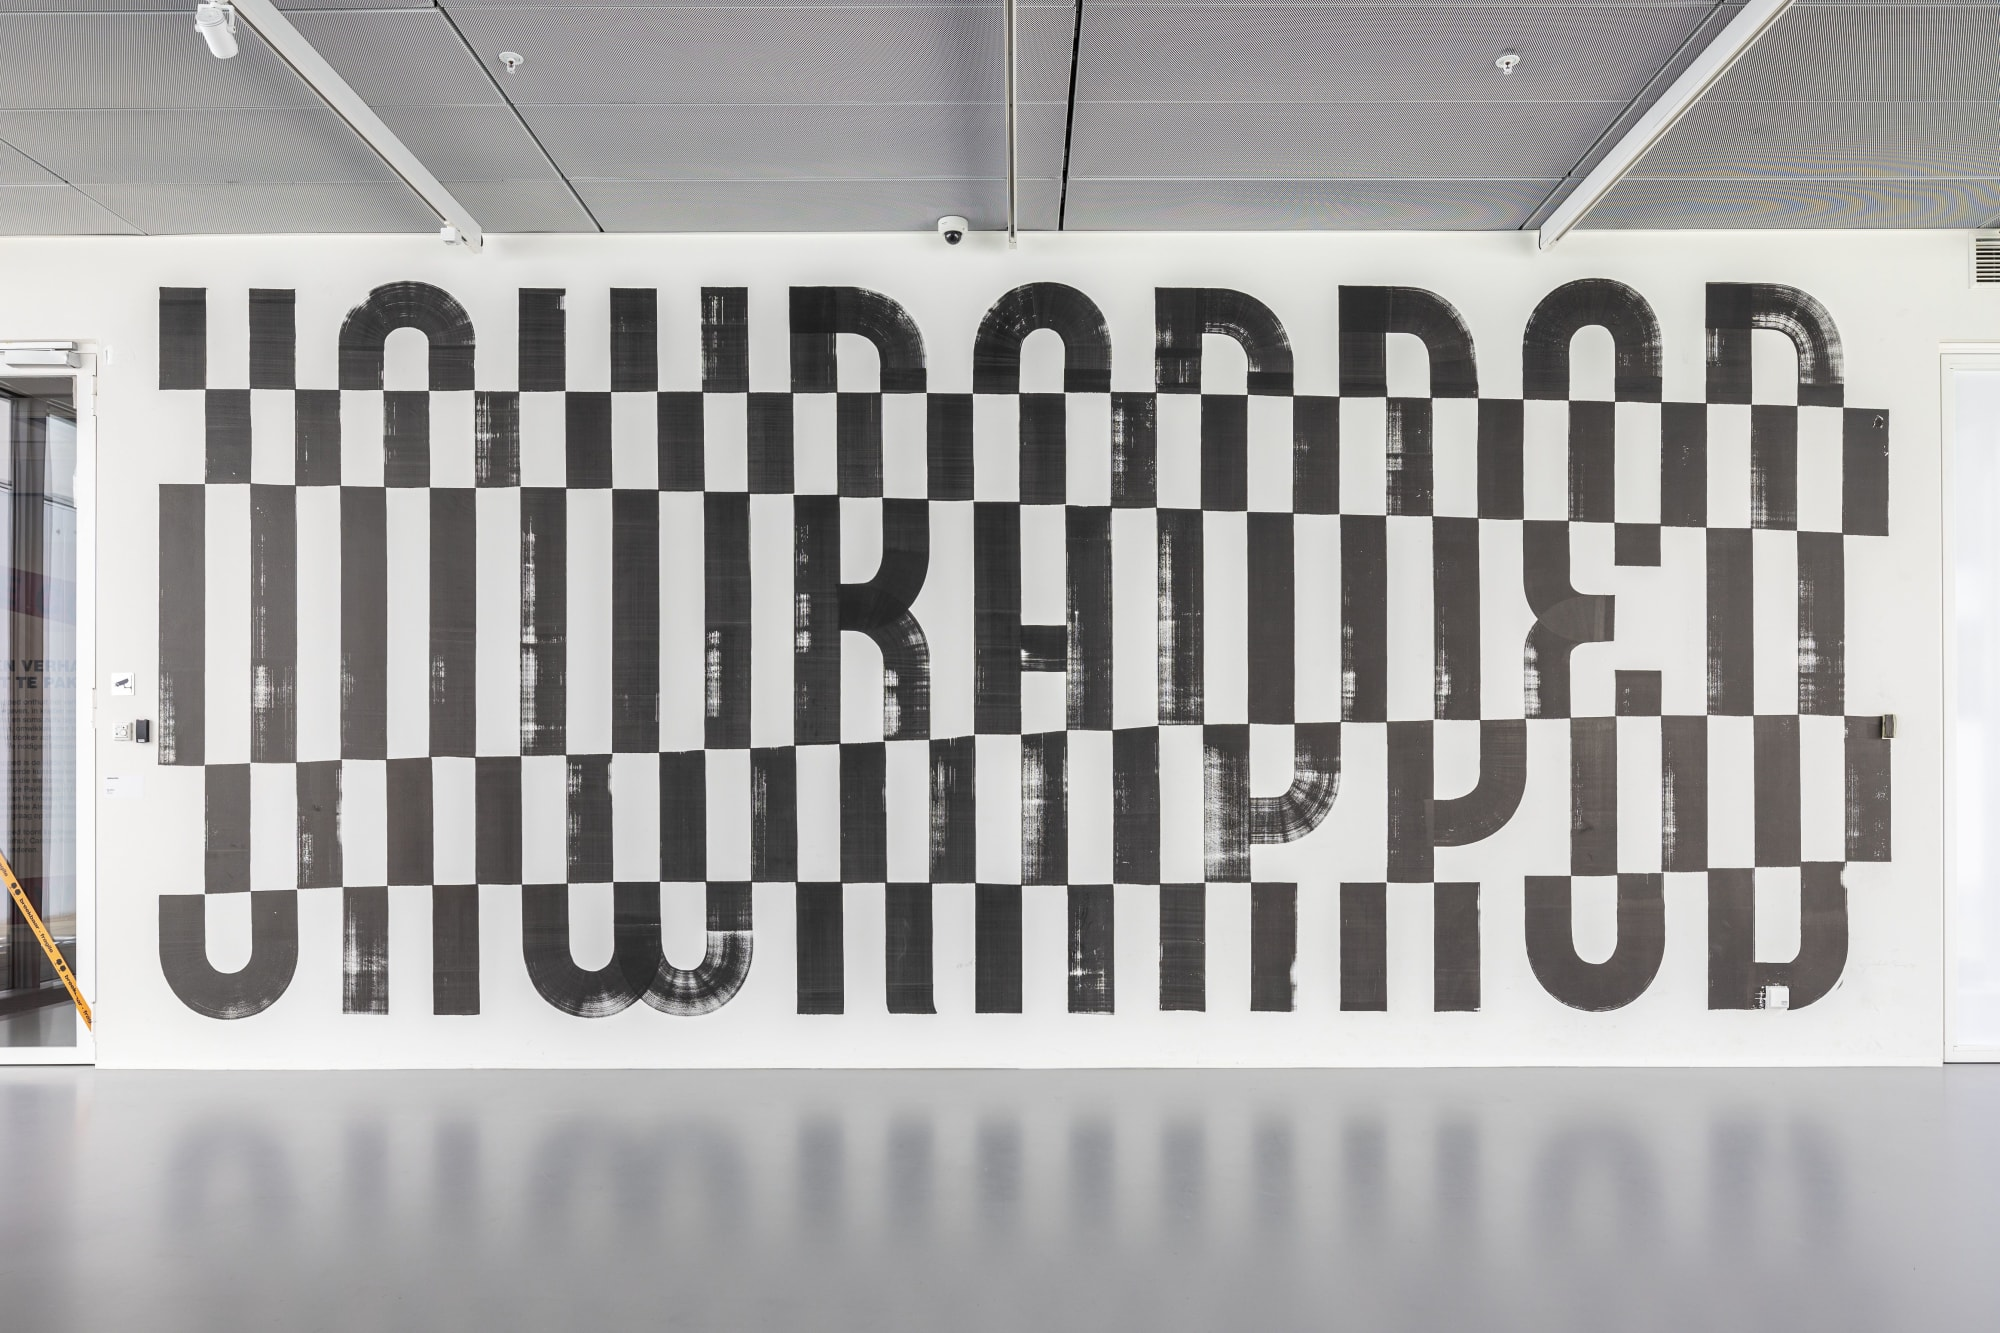 Large Black and White Staggered Typography Mural